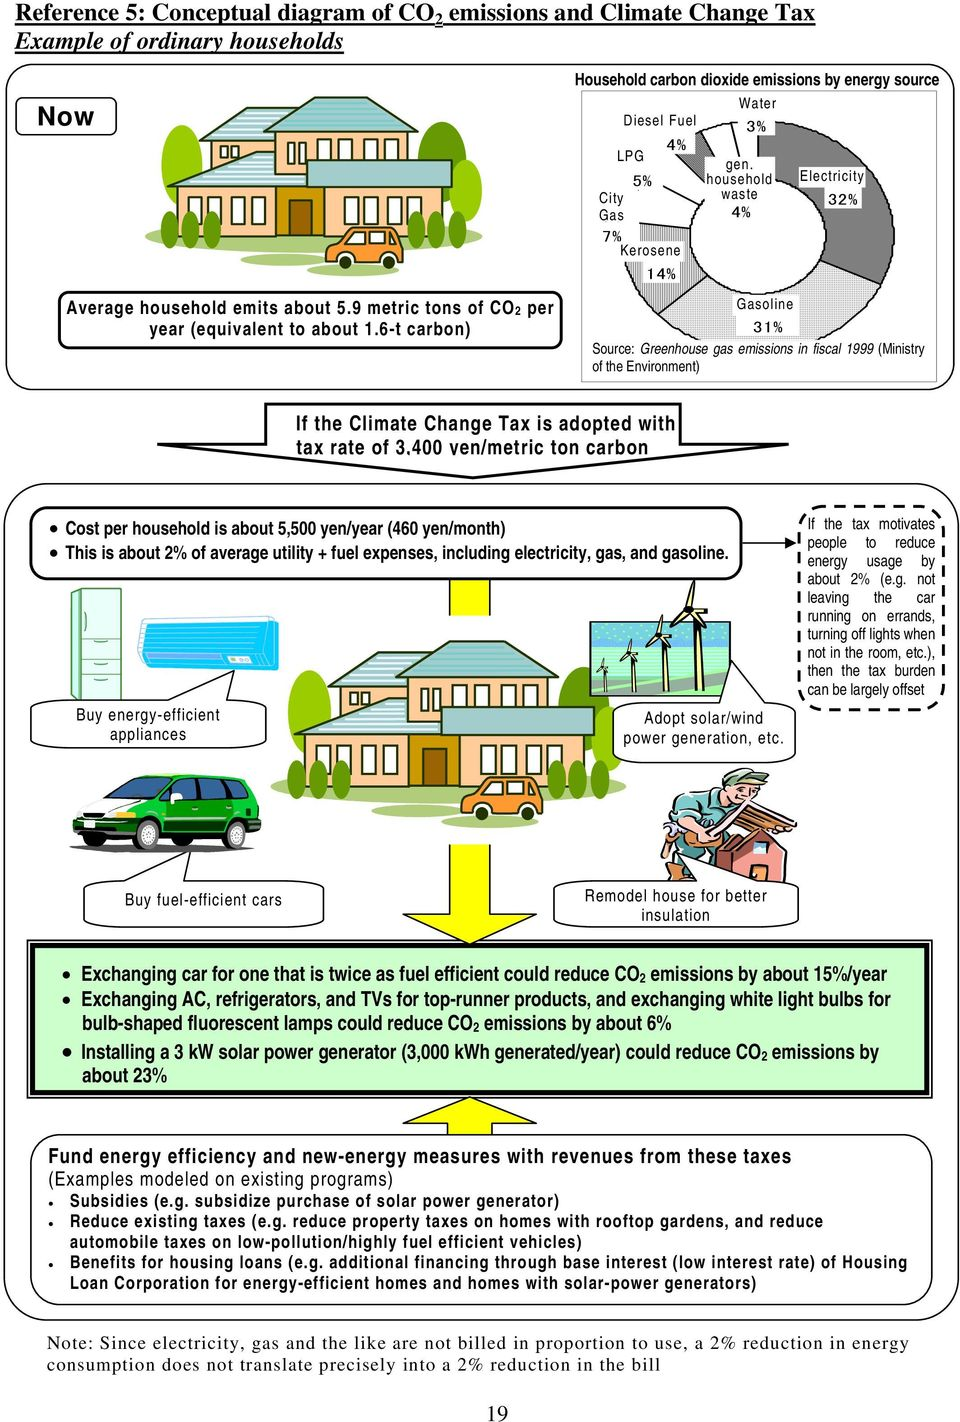 household 一 般 廃 waste 棄 物 4% Electricity 電 力 32% ガソリン Gasoline 31% Source: Greenhouse gas emissions in fiscal 1999 (Ministry of the Environment) If the Climate Change Tax is adopted with tax rate of